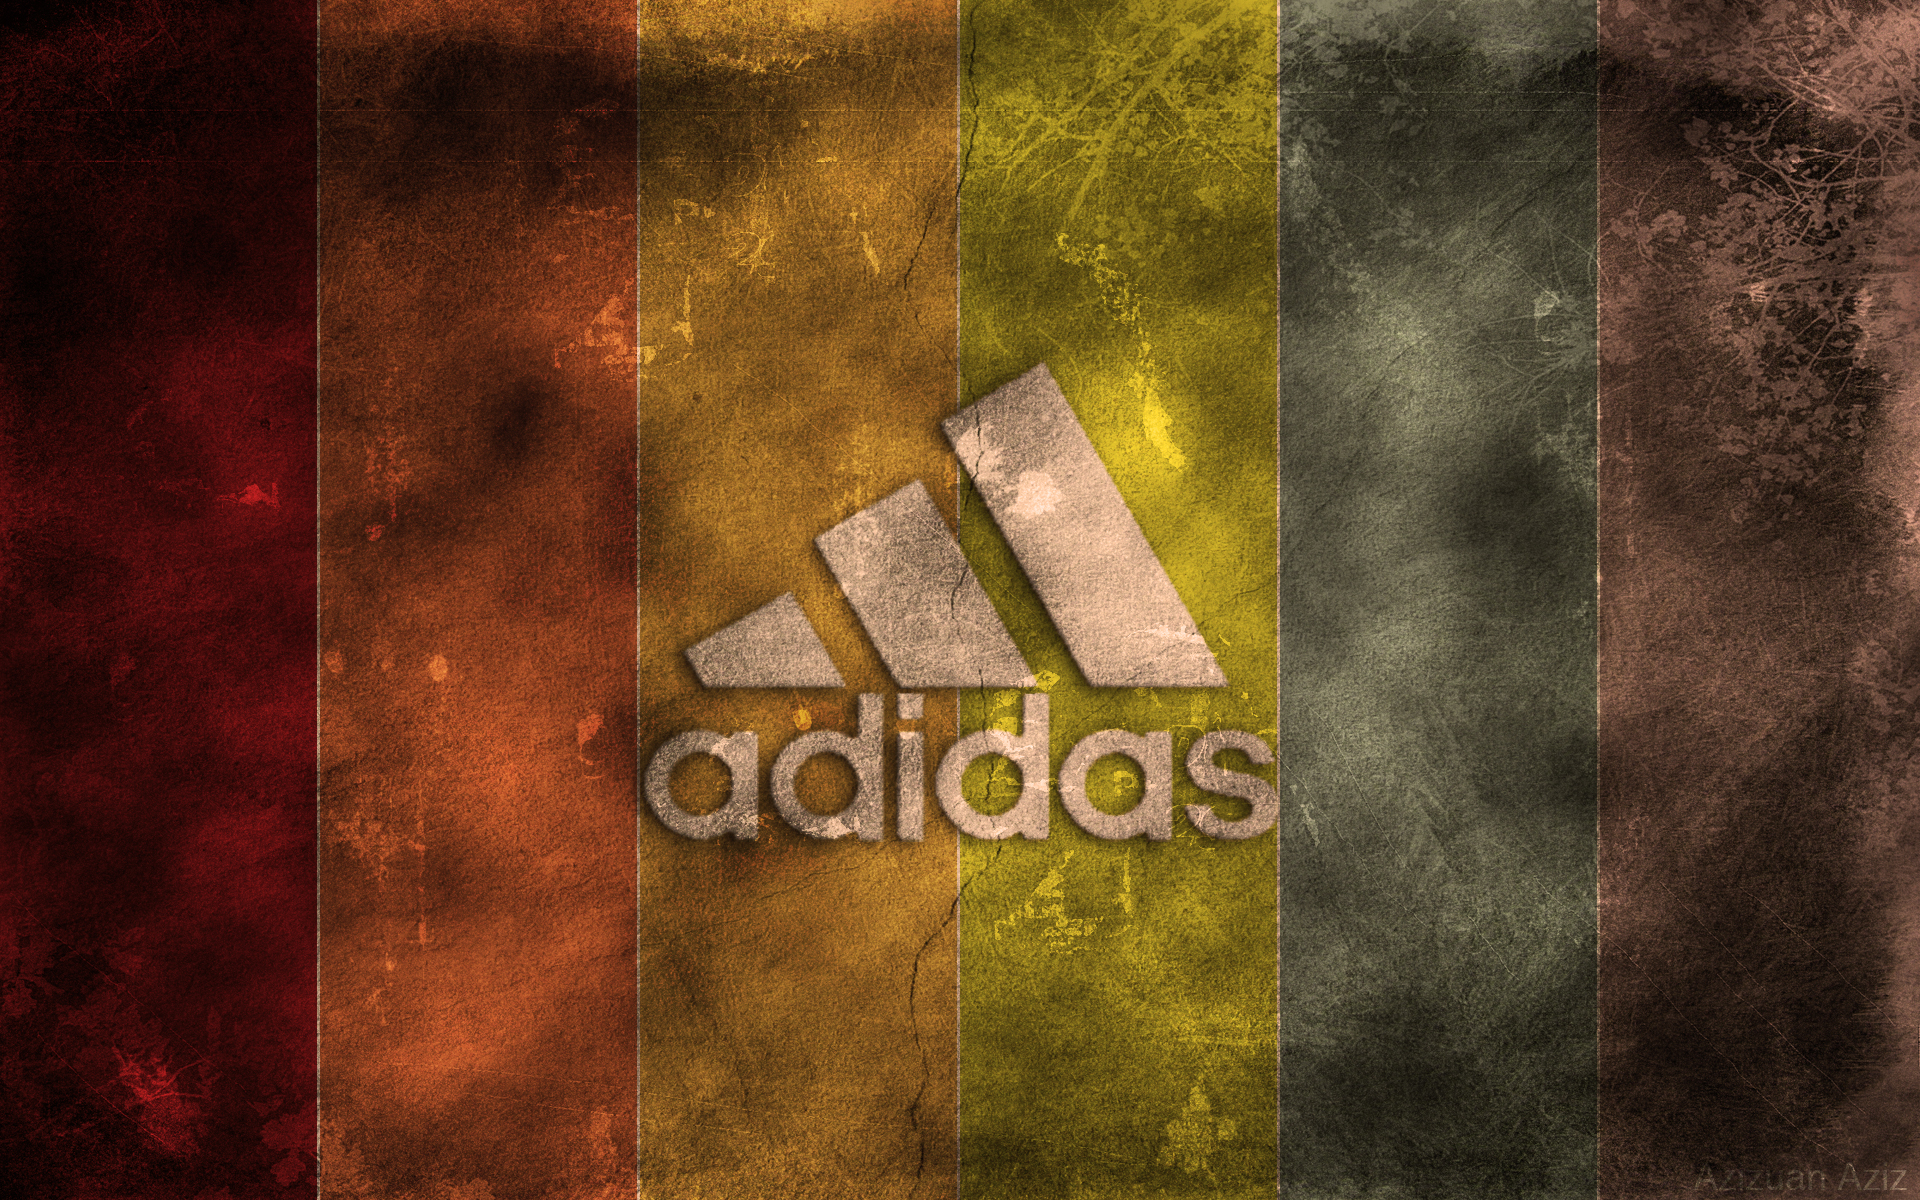 Adidas hd wallpaper full hd pictures - Adidas wallpaper hd ...